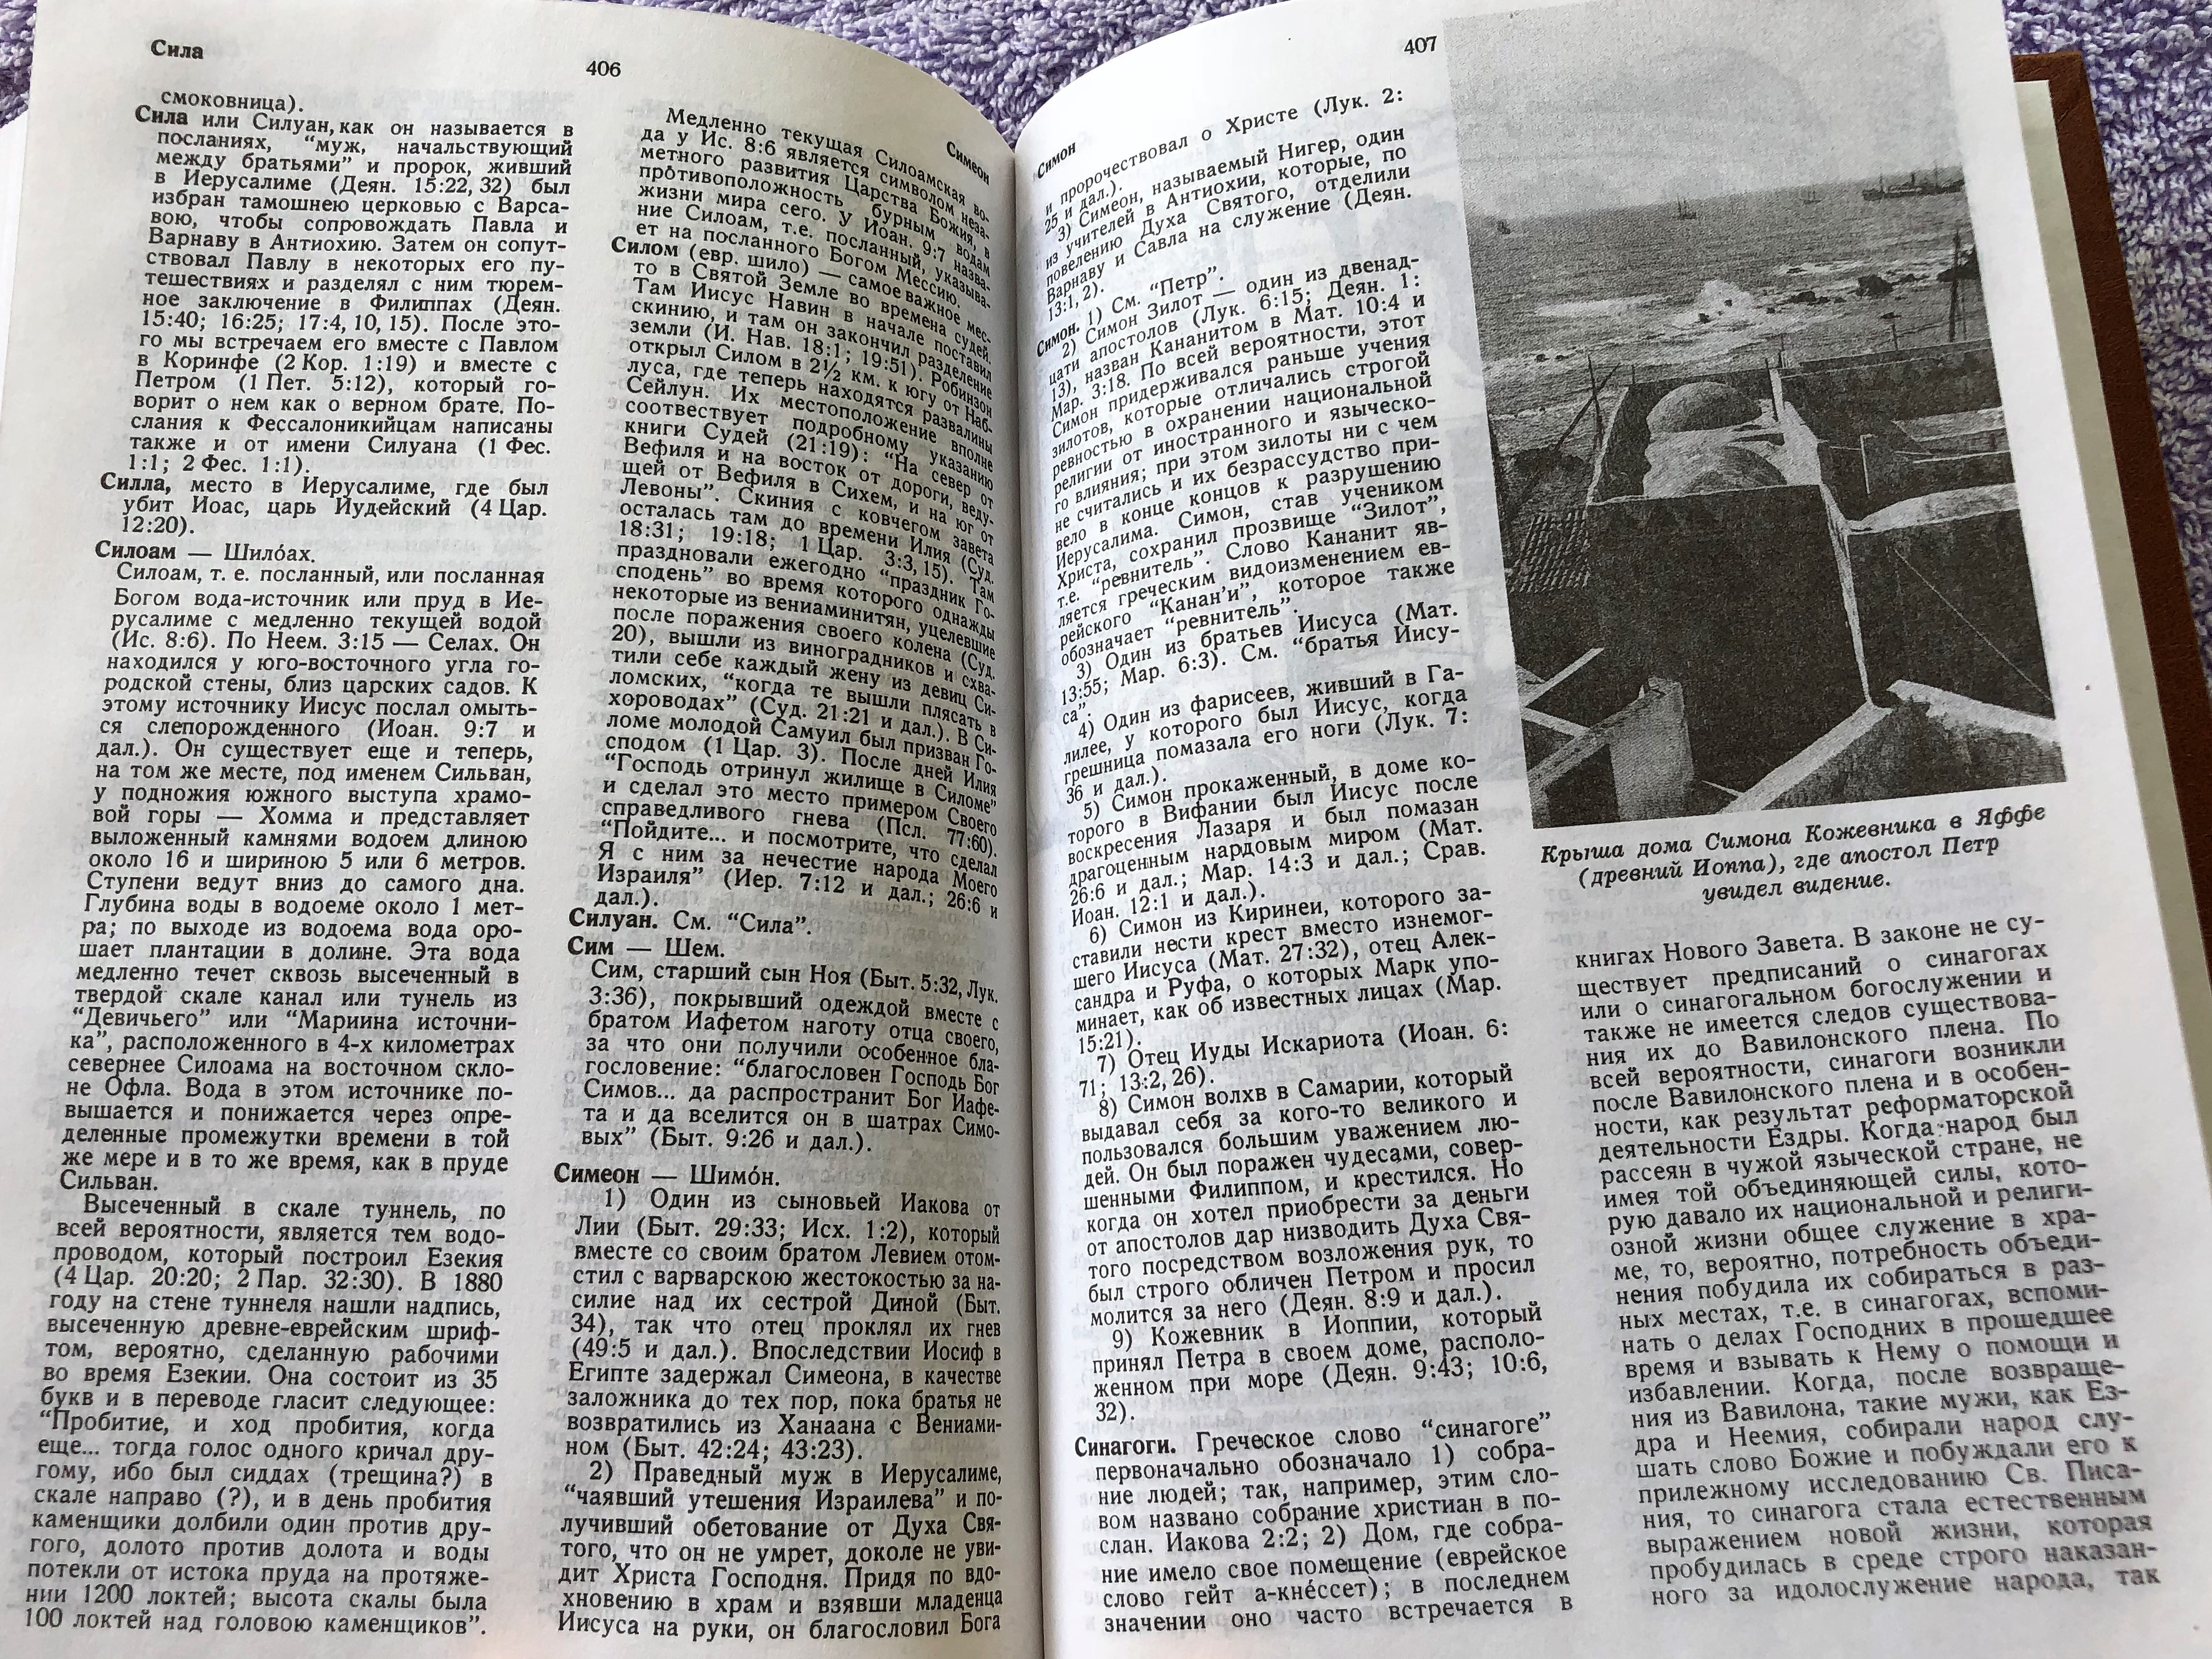 russian-bible-dictionary-encyclopedic-dictionary-in-russian-compiled-by-eric-nustrem-13-.jpg